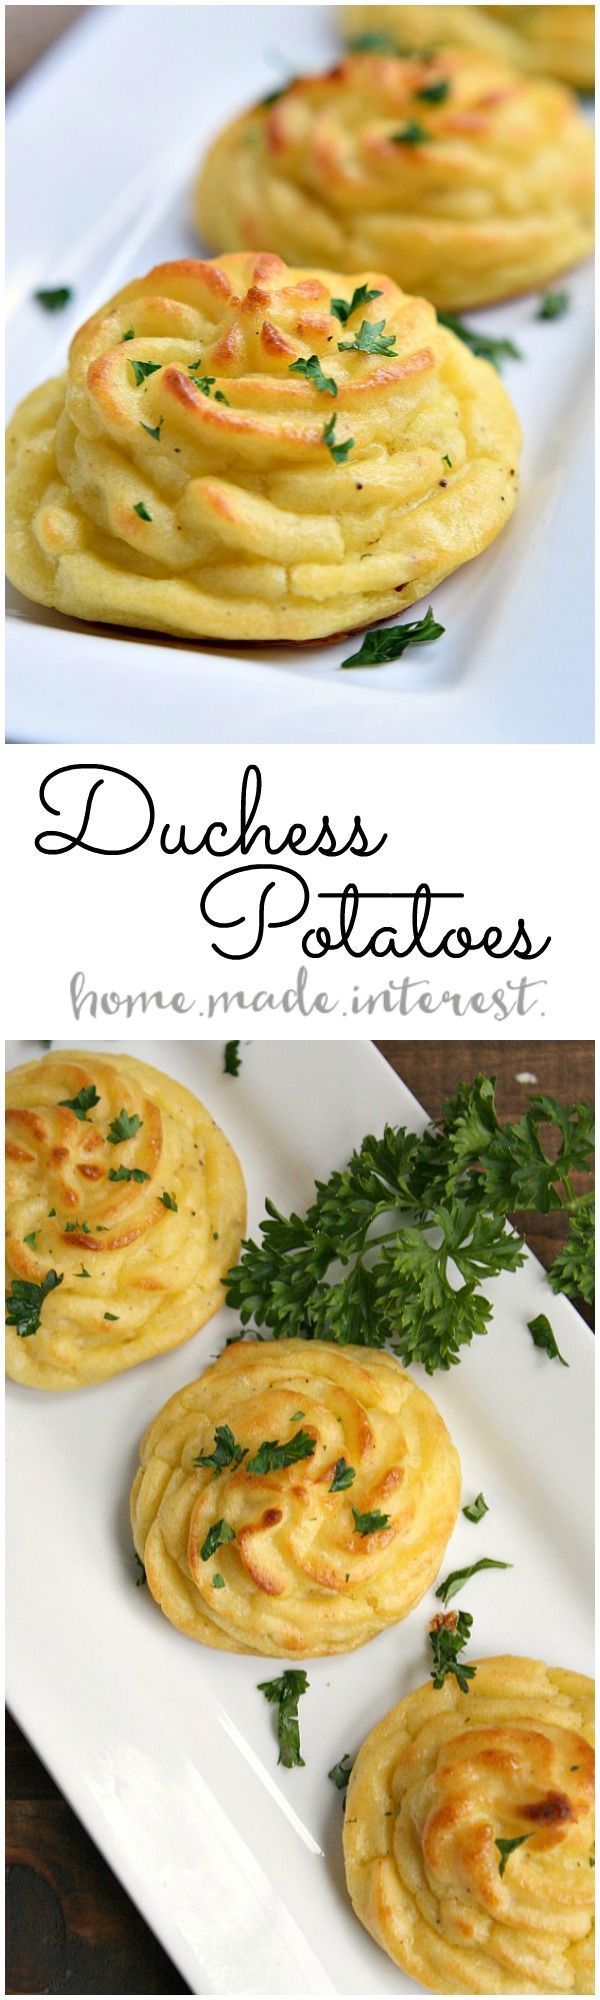 Duchess potatoes are an easy way to make mashed potatoes into something fancy. This duchess potatoes recipe will impress your guests this holiday season! ouramericankitchen AD